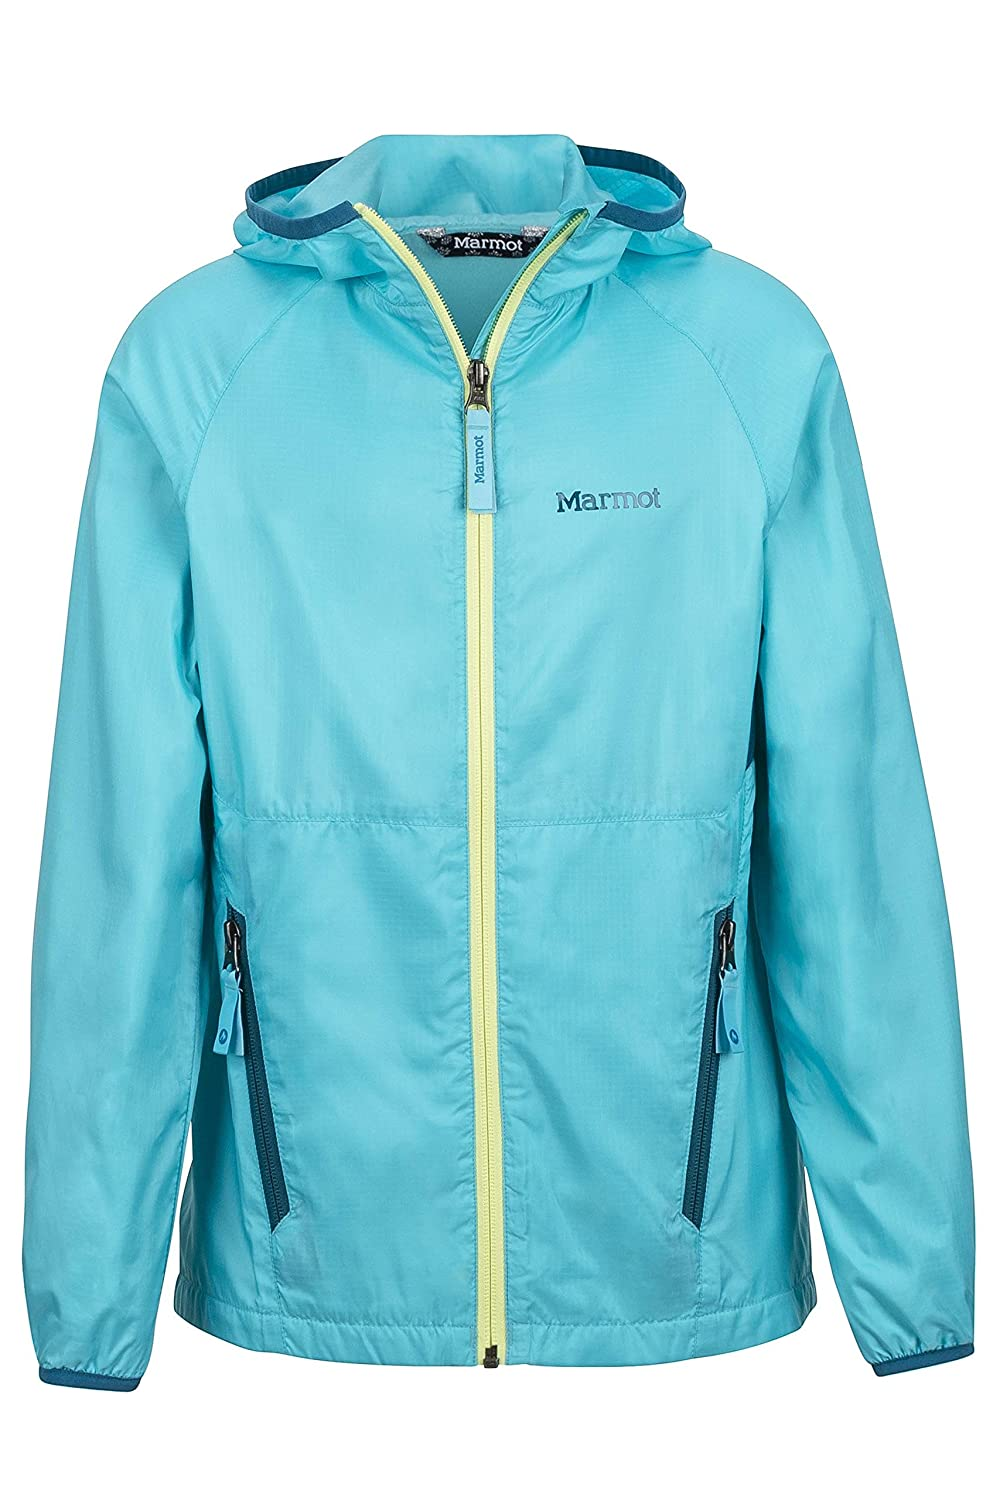 Marmot Ether Girls' Lightweight Hooded Windbreaker Jacket